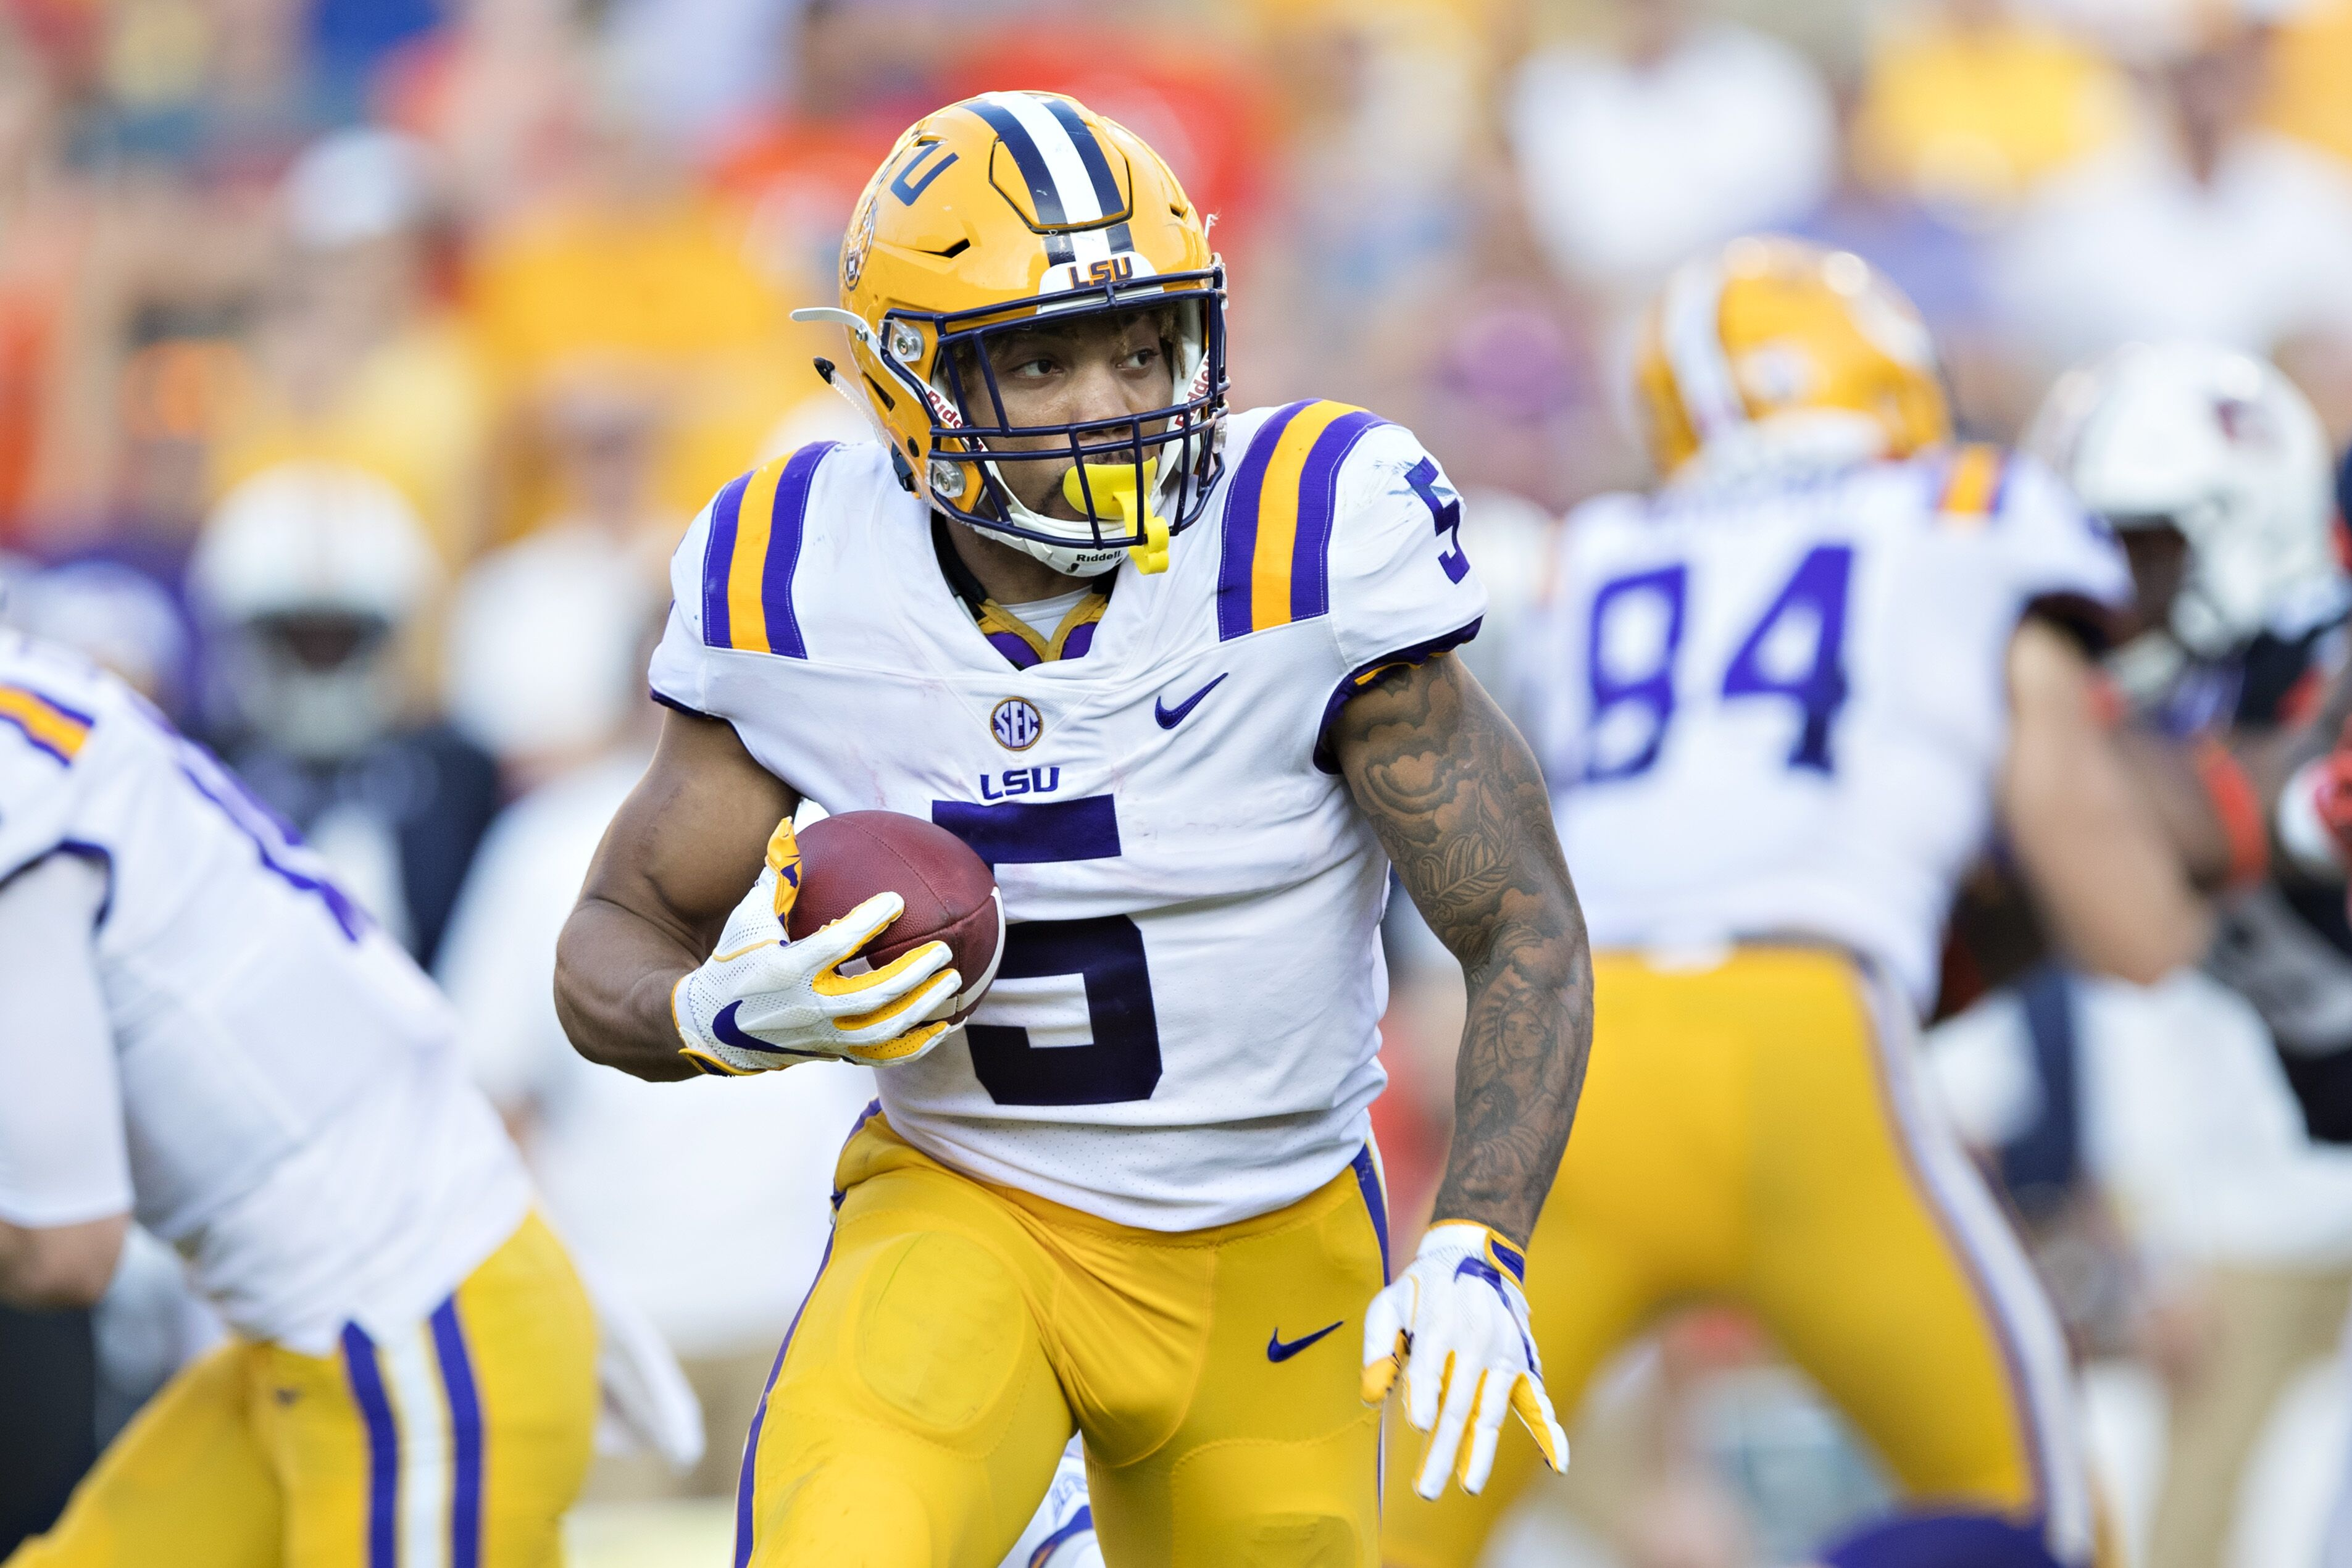 2017 2018 College Football Bowl Schedule >> Eagles are showing a lot of interest in LSU RB Derrius Guice